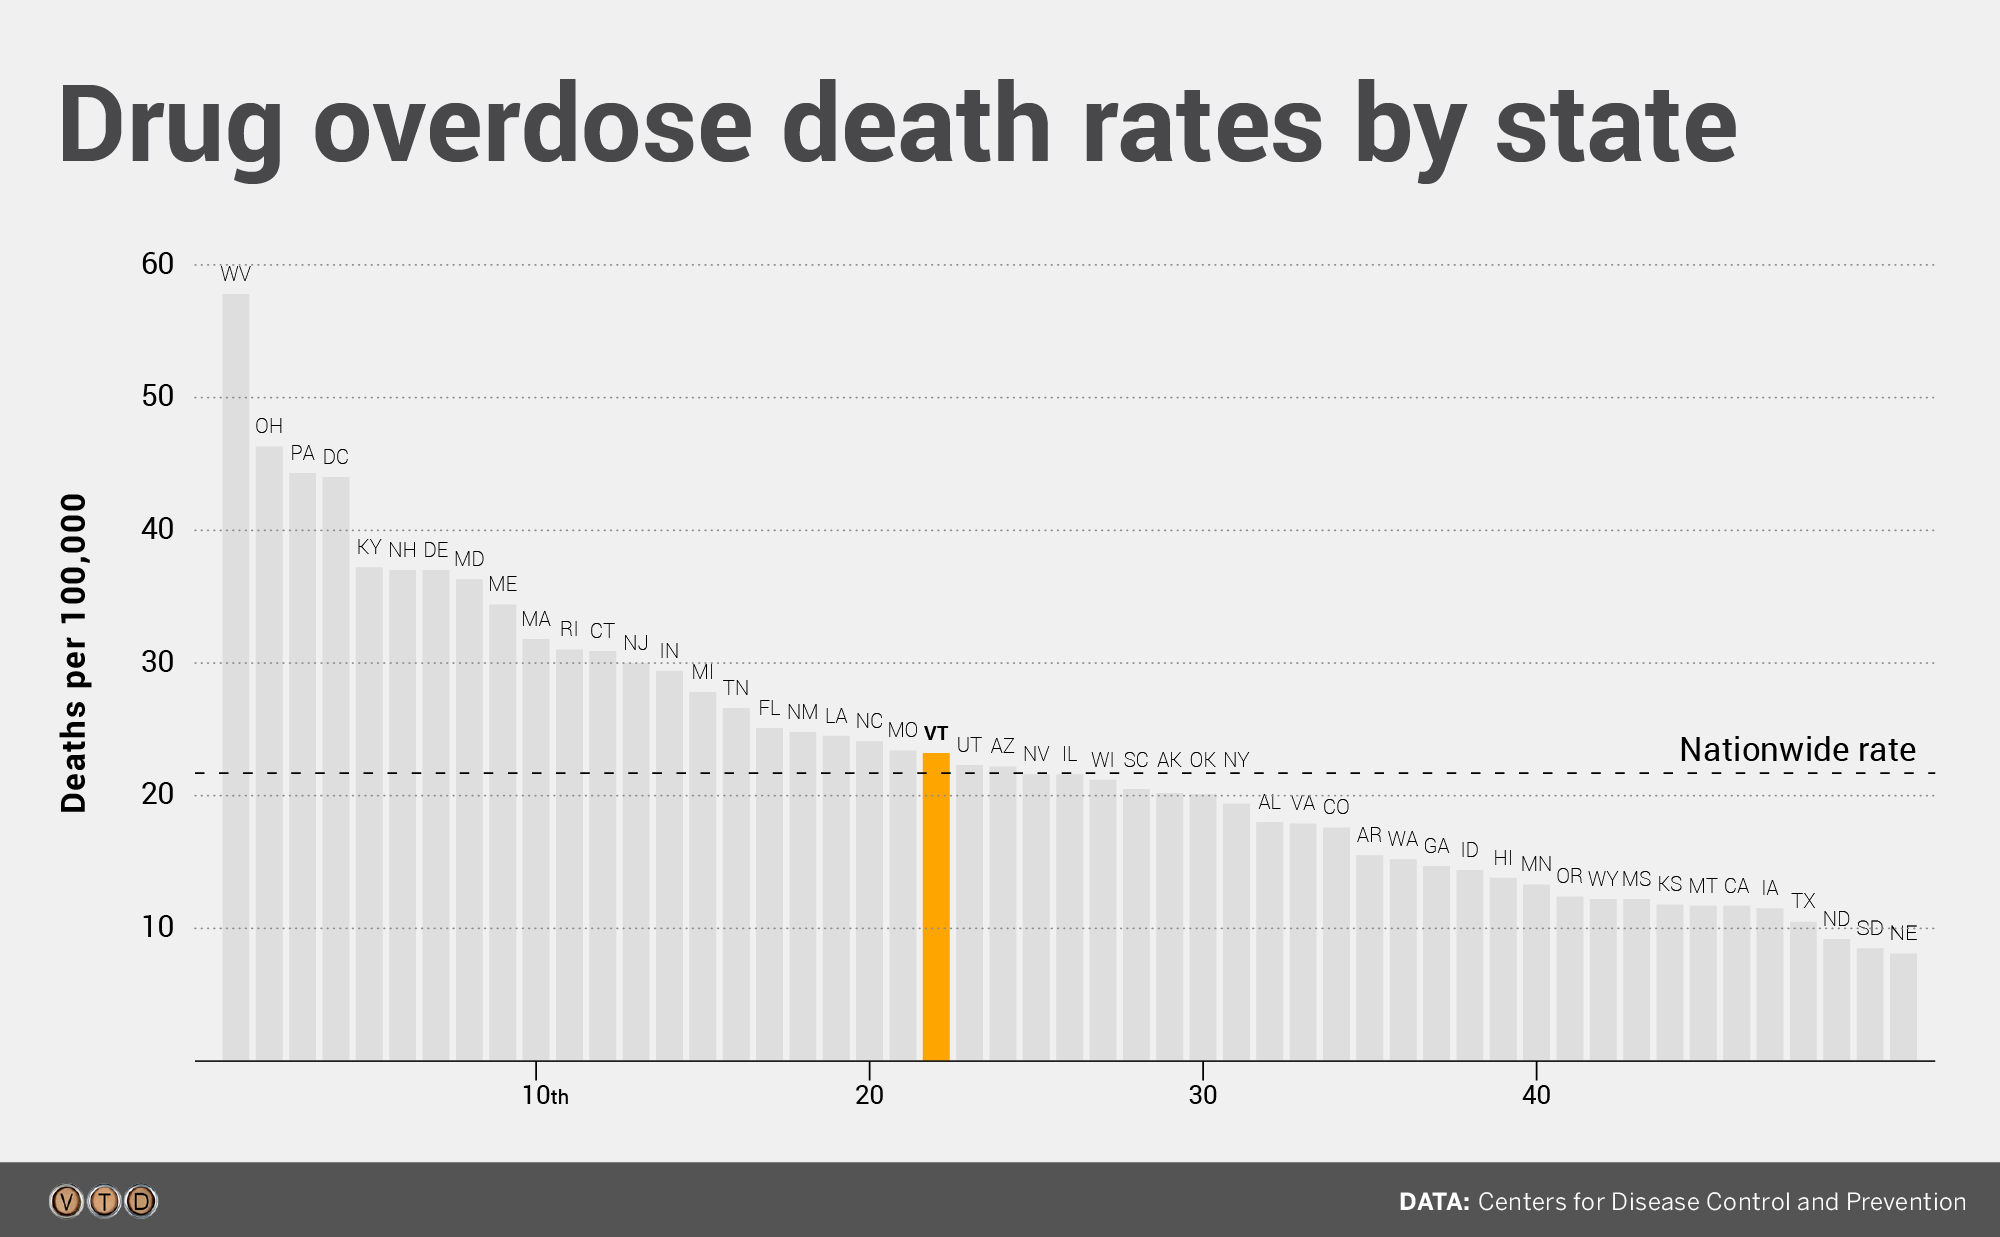 Vermont overdose rates rank 22nd in nation